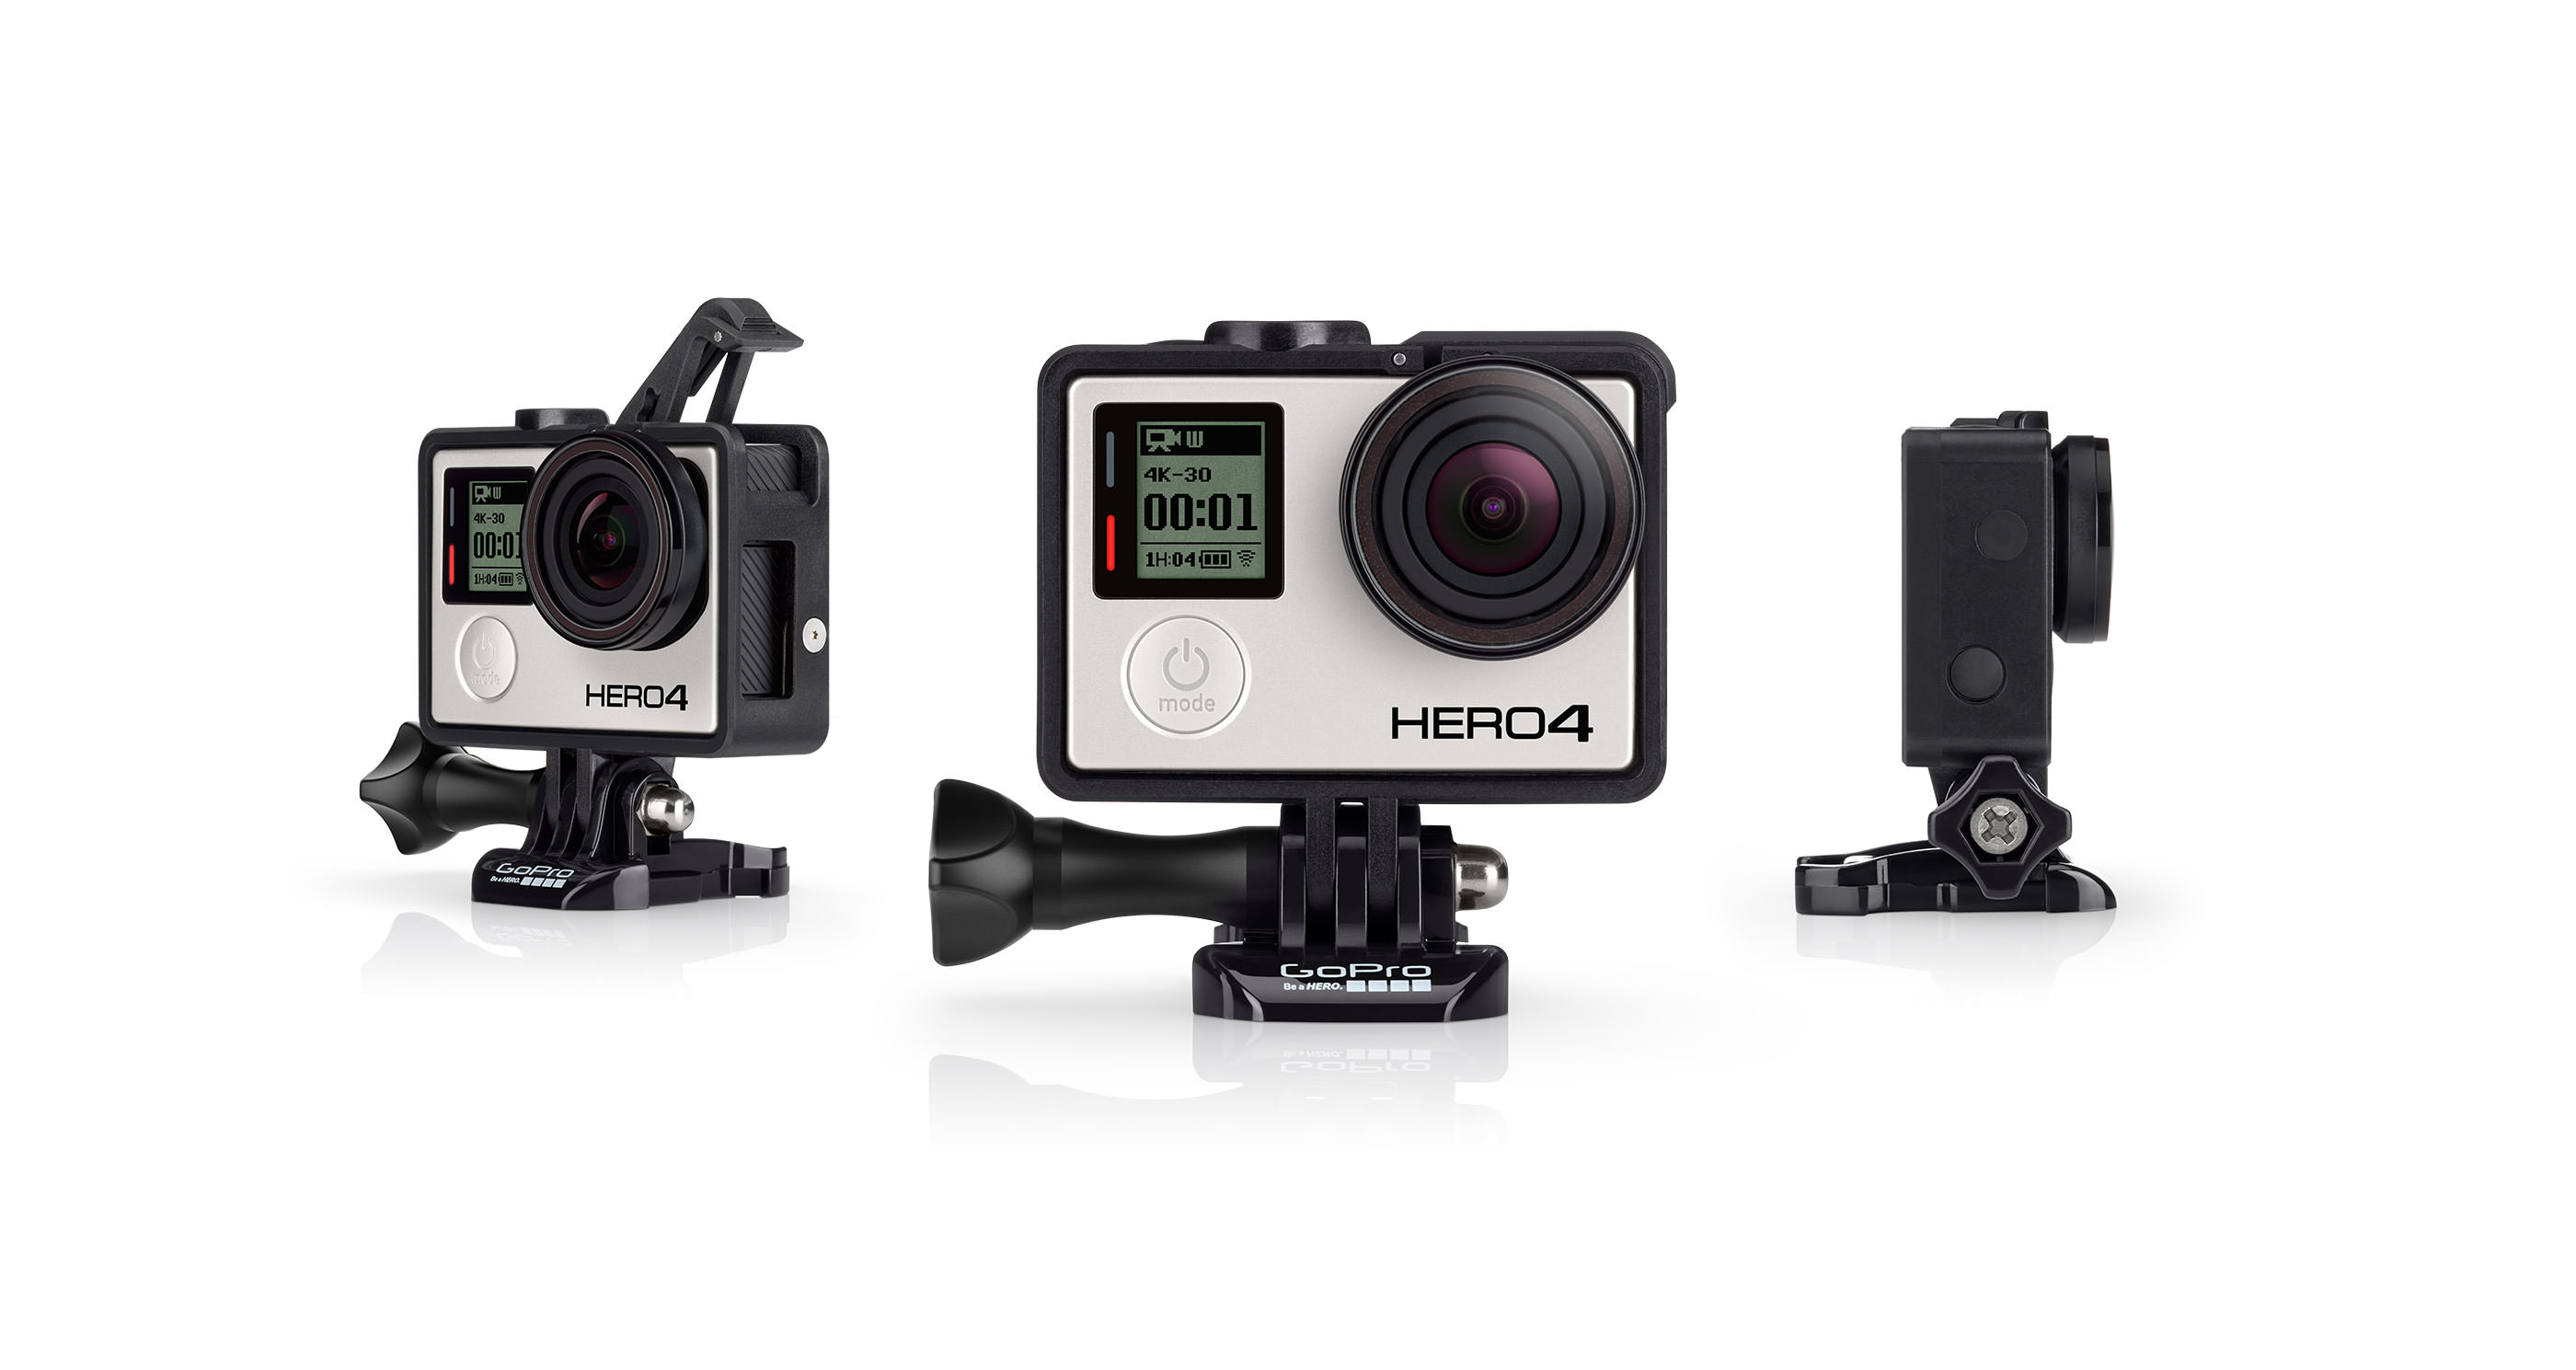 GoPro's spectacular implosion reveals brutal reality facing tech hardware startups